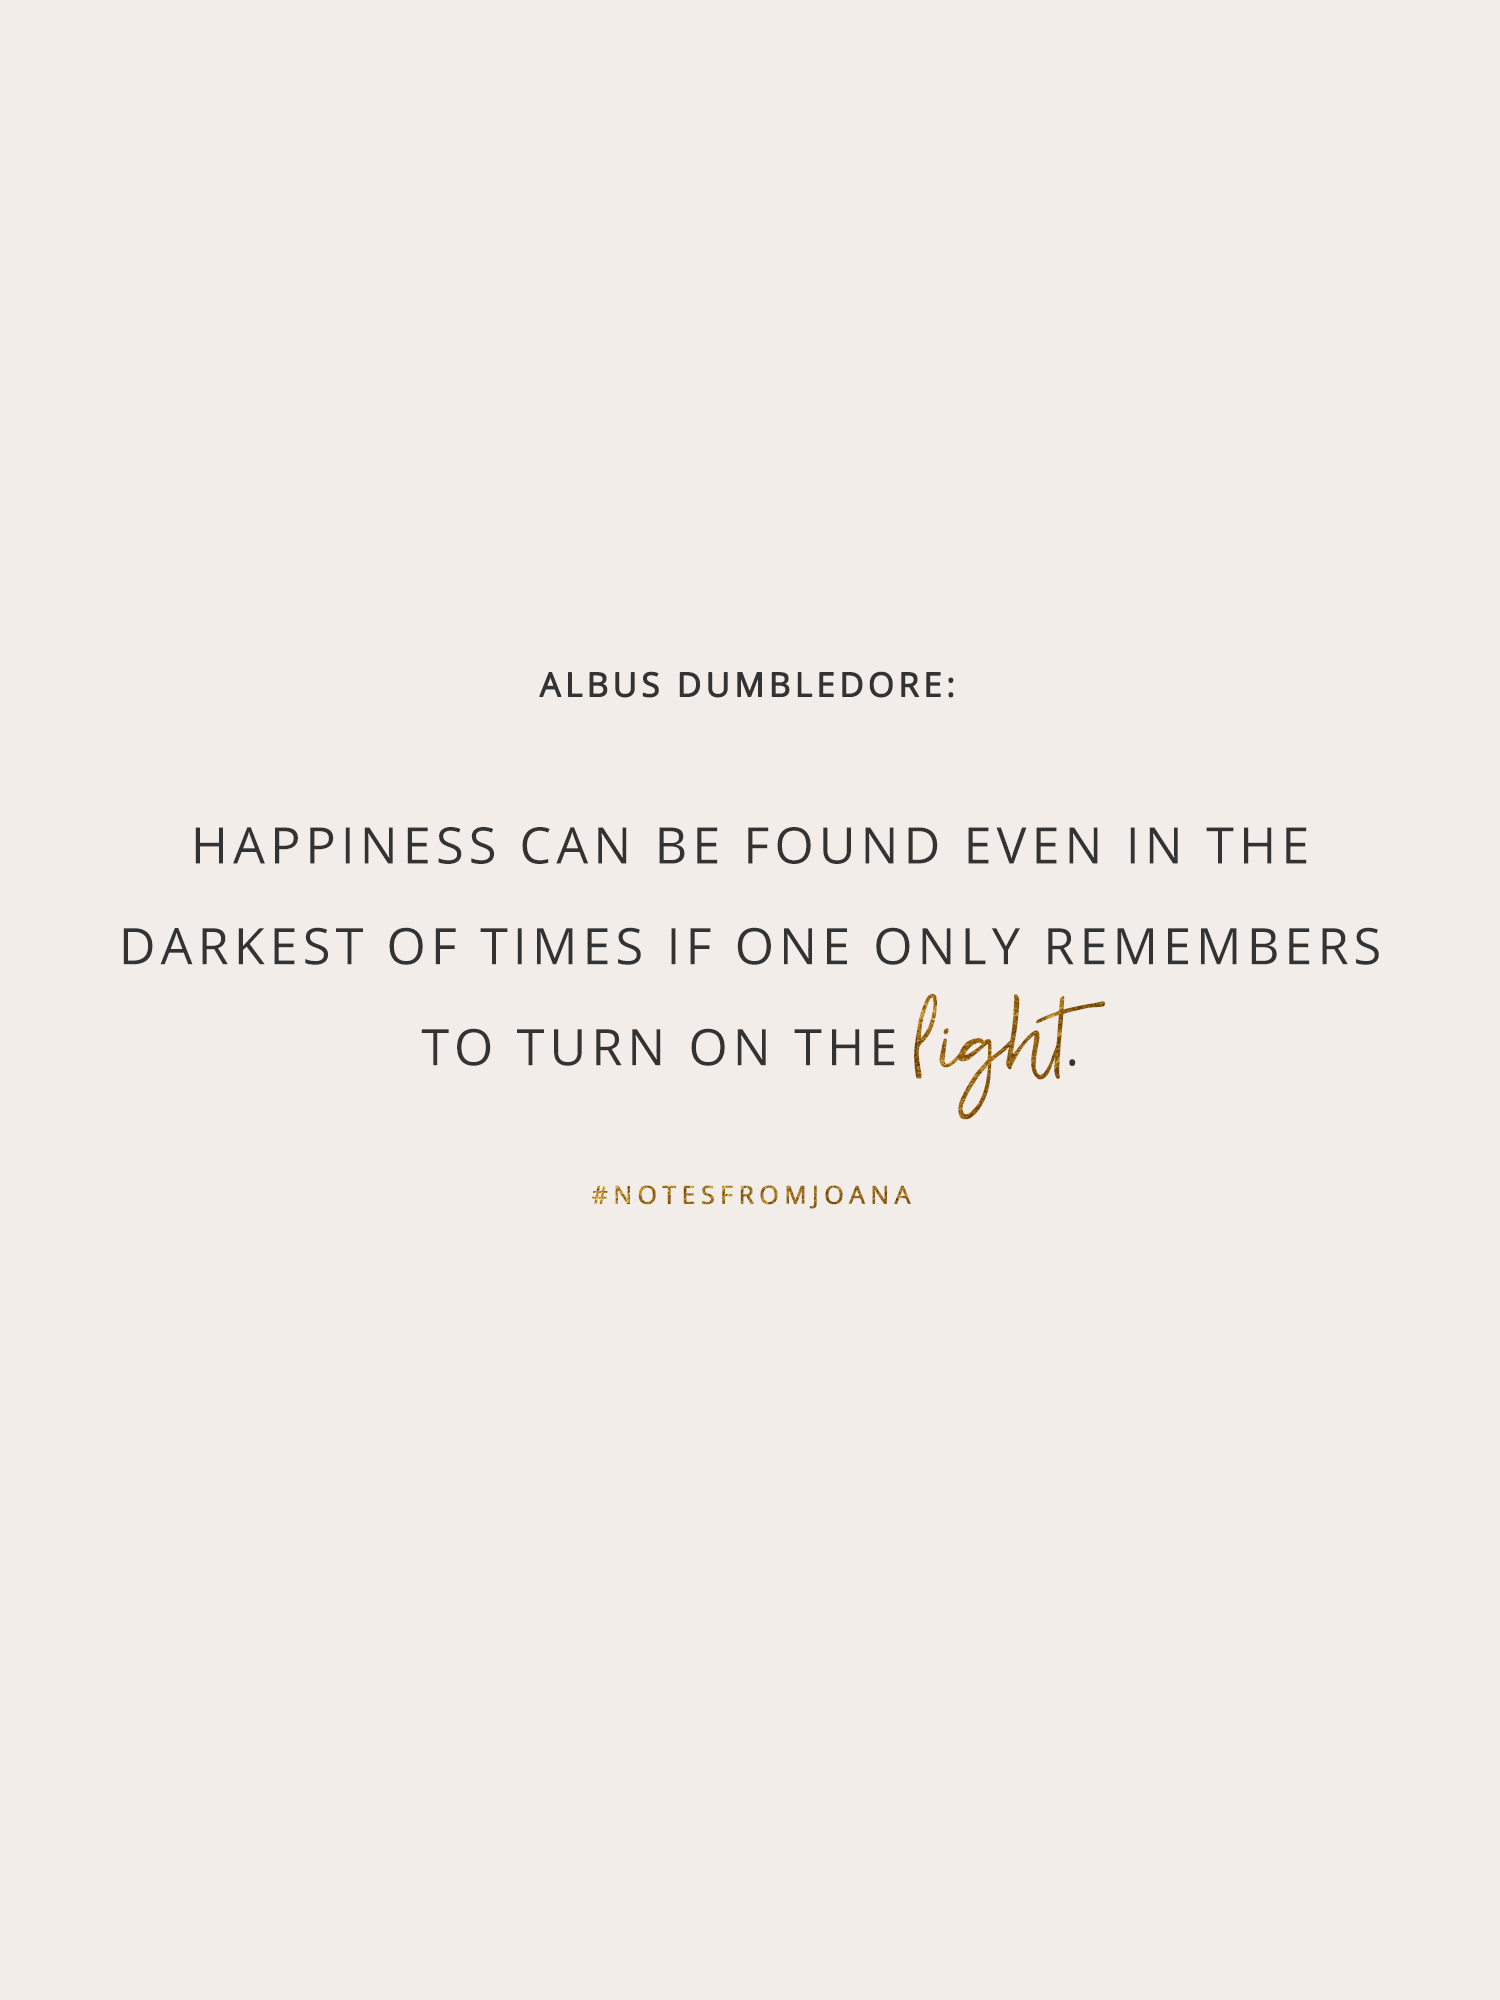 20 Inspirational Quotes To Help You Become Your Best Self. Happiness can be found even in the darkest of times if one only remembers to turn on the light. ALBUS DUMBLEDORE // Notes from Joana